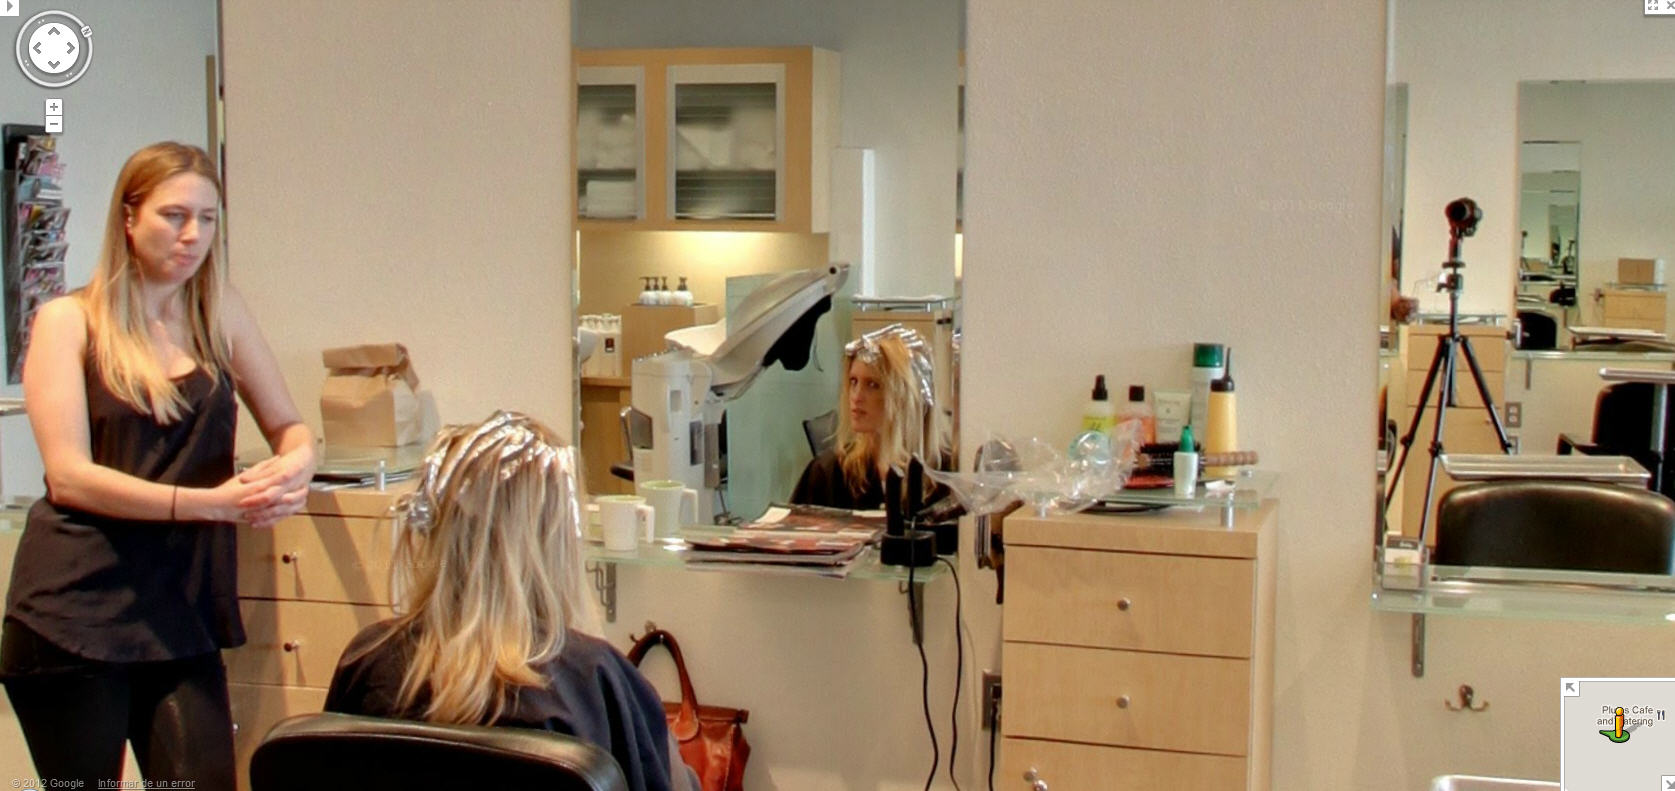 priceless-indoor-google-street-view-captures-a-girl-getting-her-hair-colored